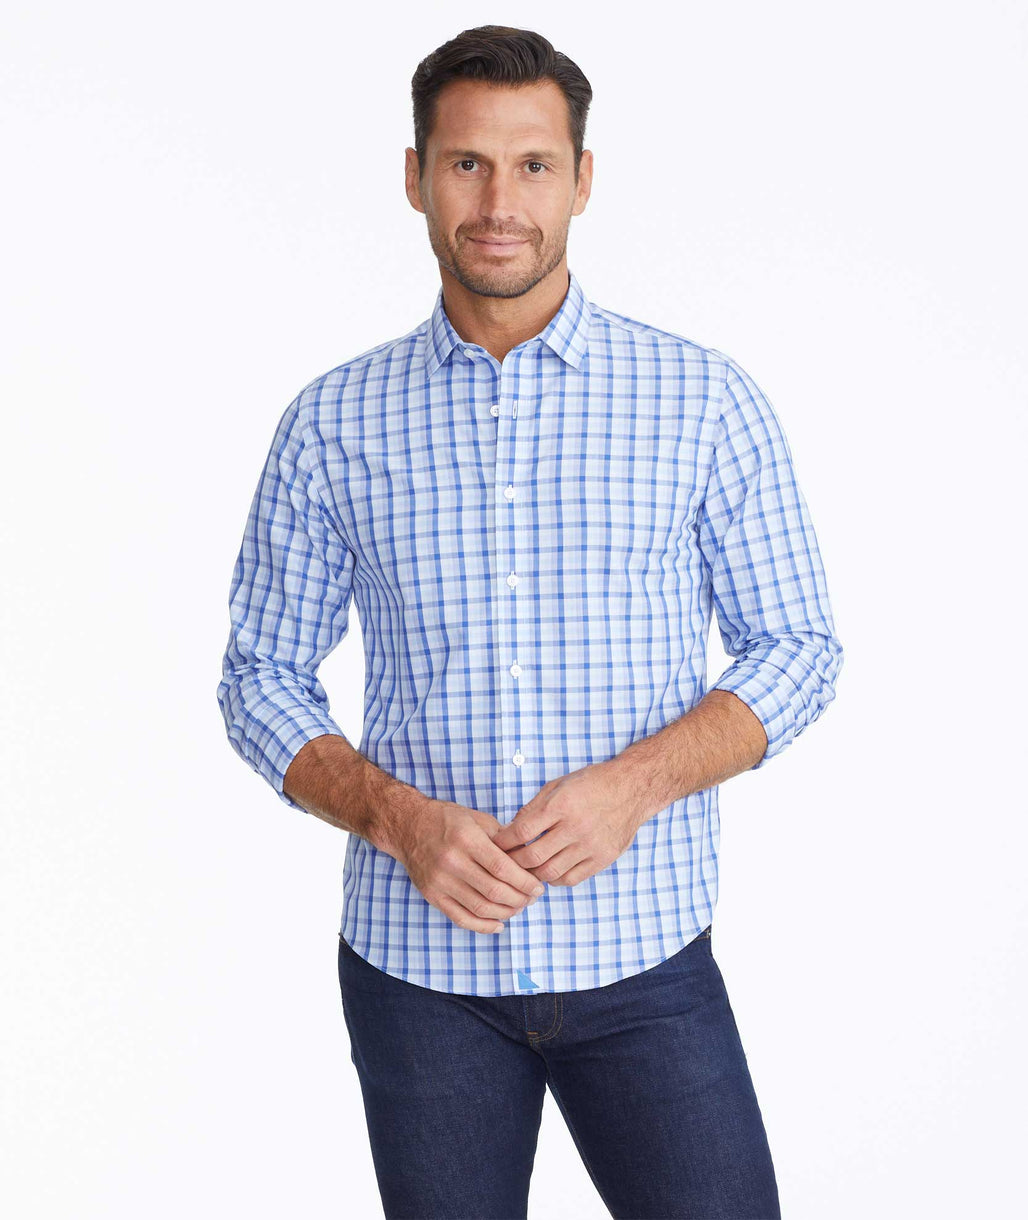 Model wearing a Blue Wrinkle-Free Cataldi Shirt